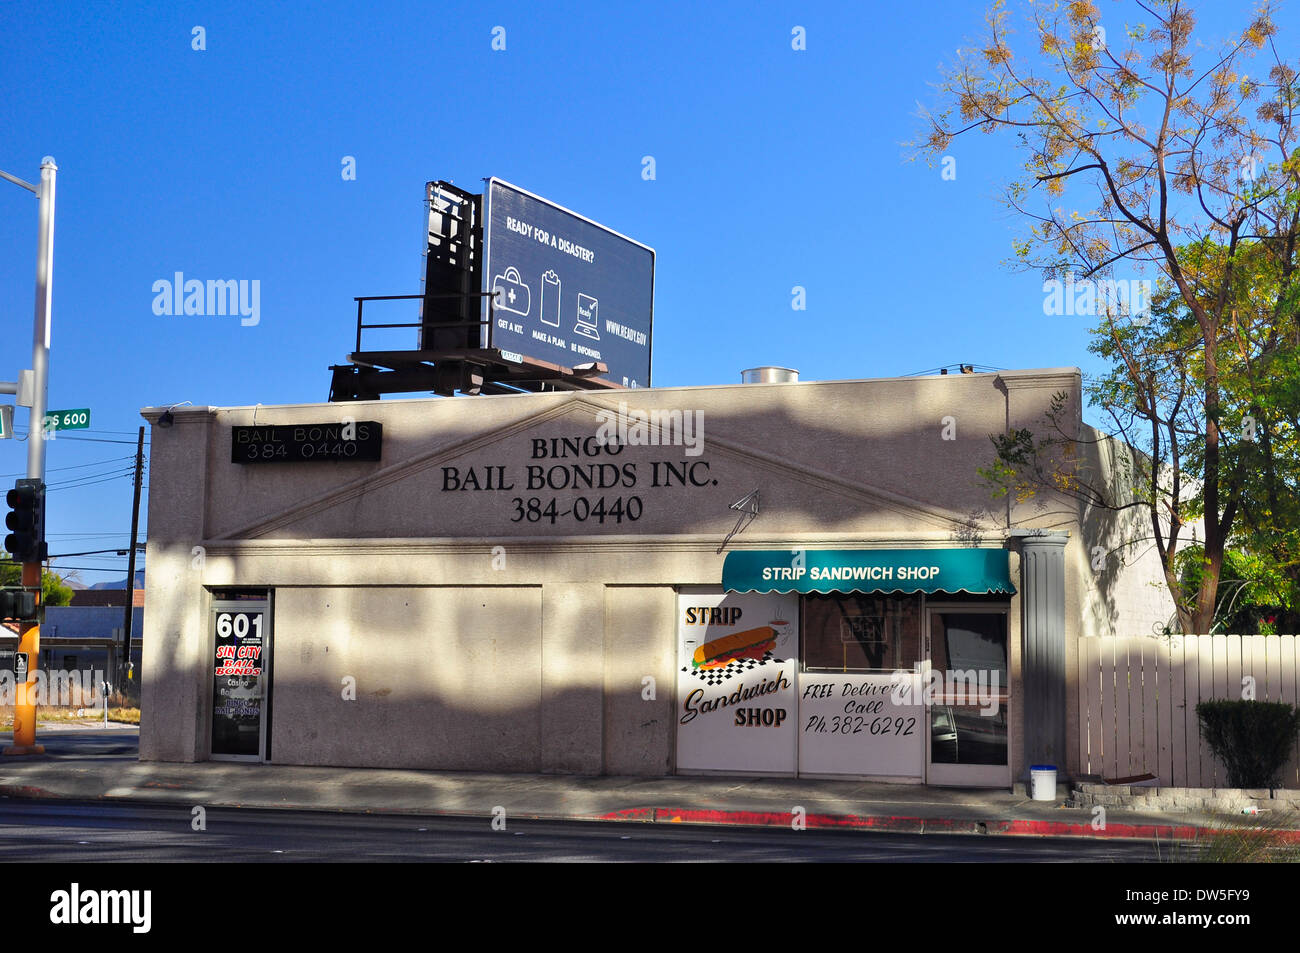 Bingo Bail Bonds Inc. in Las Vegas, Nevada, USA - Stock Image